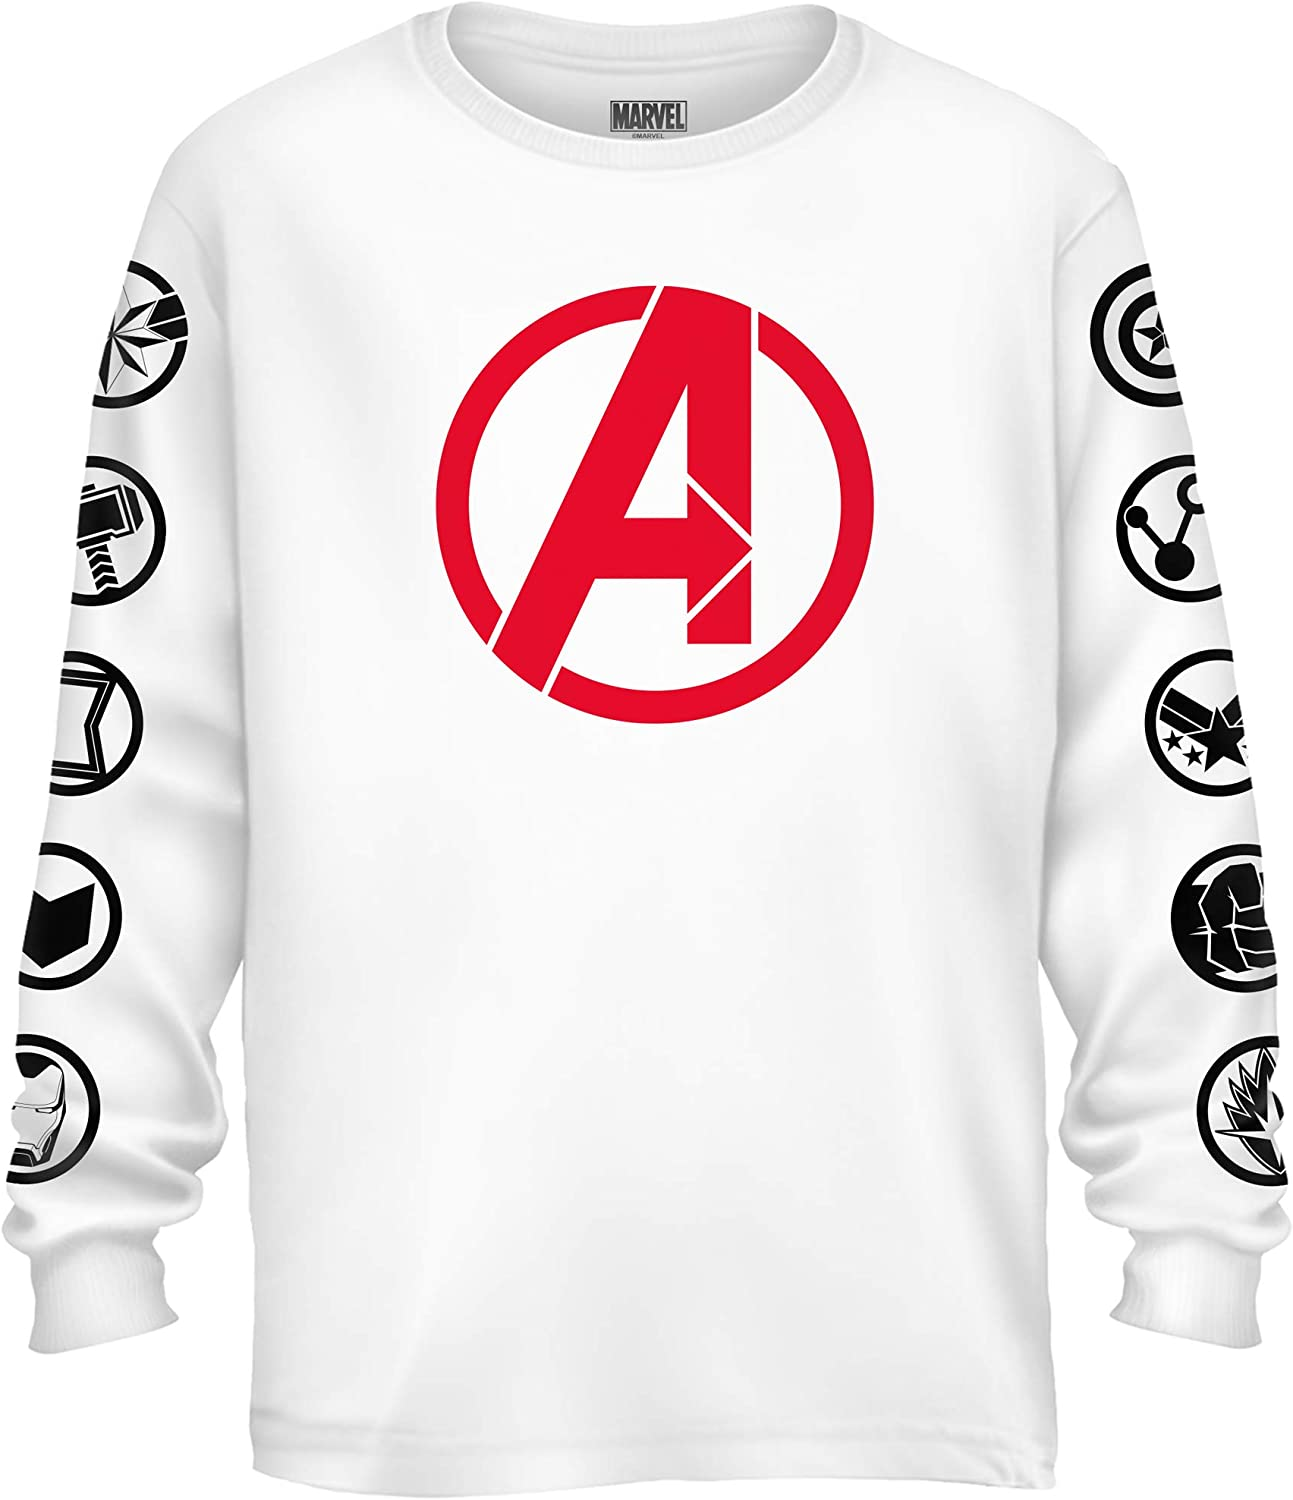 NEW Marvel Avengers End Game kids Ironman Hoodies T-Shirt With Mask